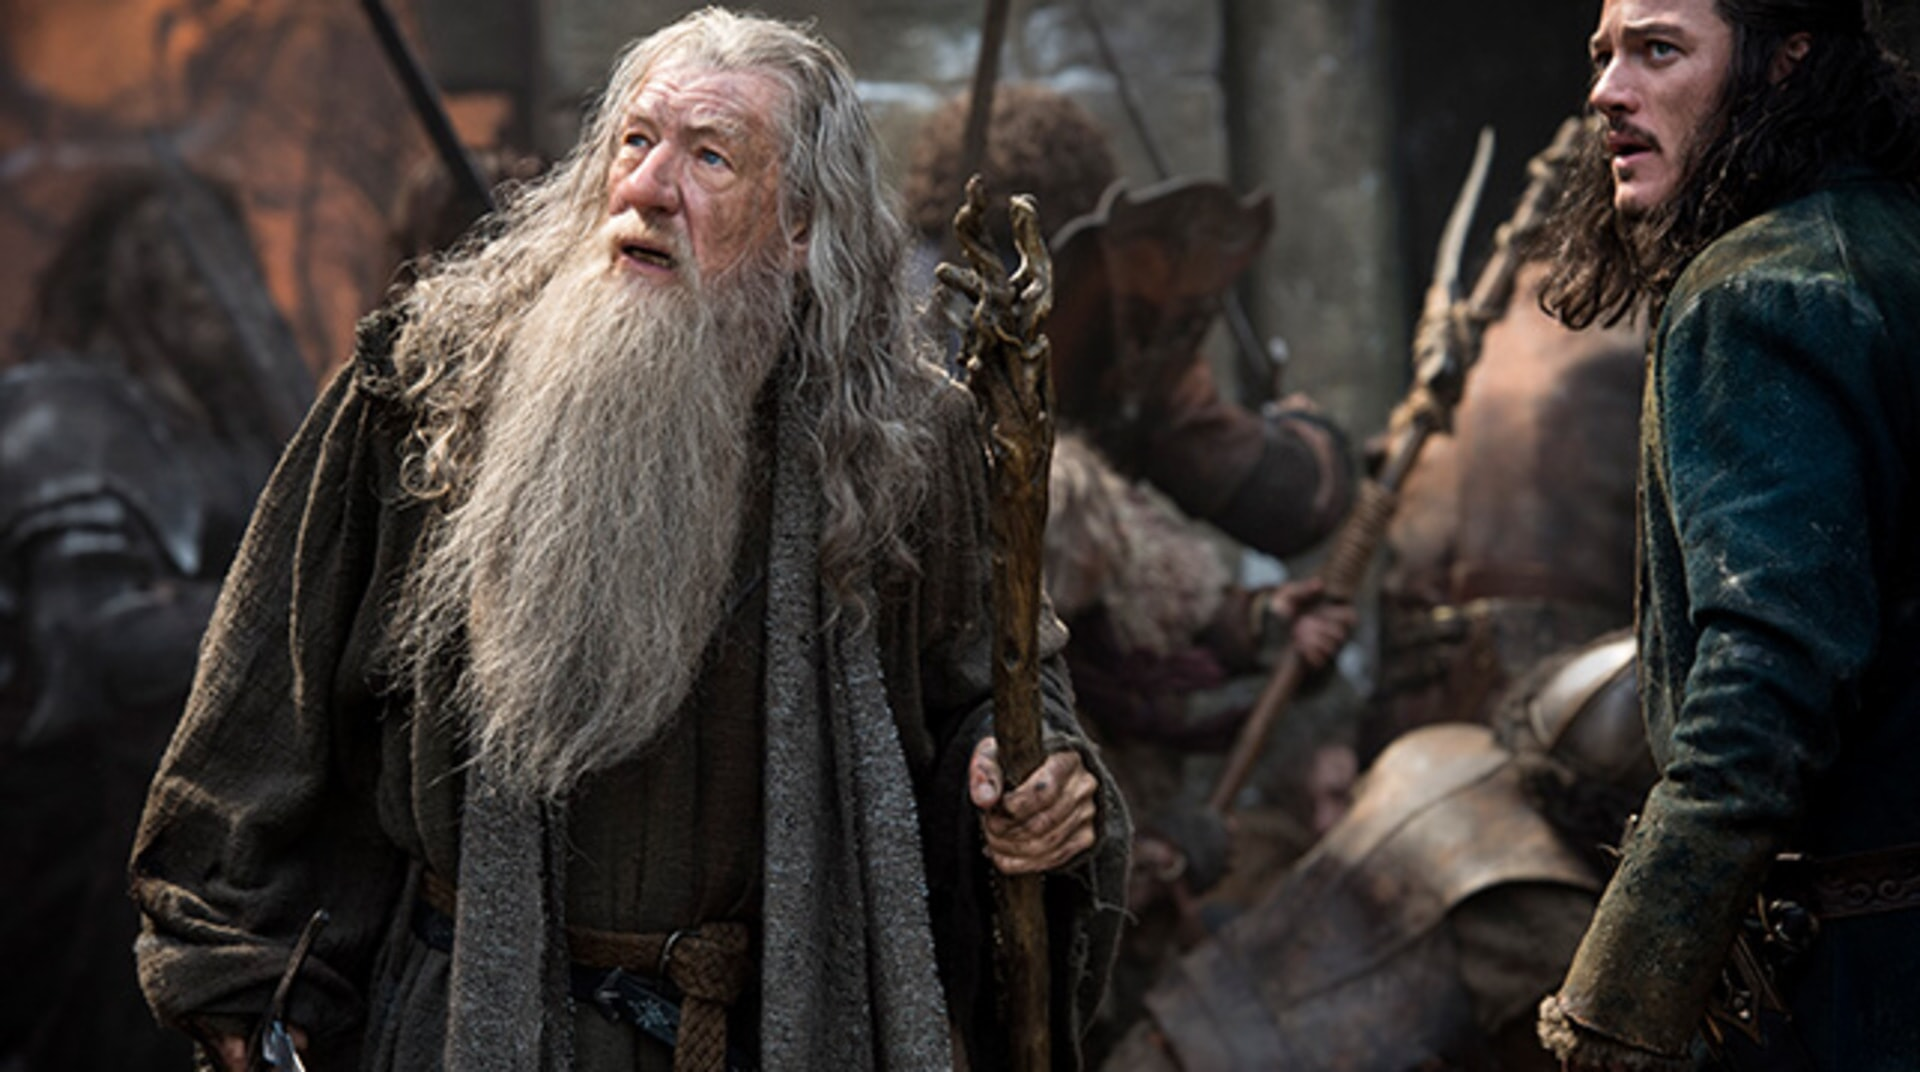 The Hobbit: The Battle of the Five Armies - Image 10